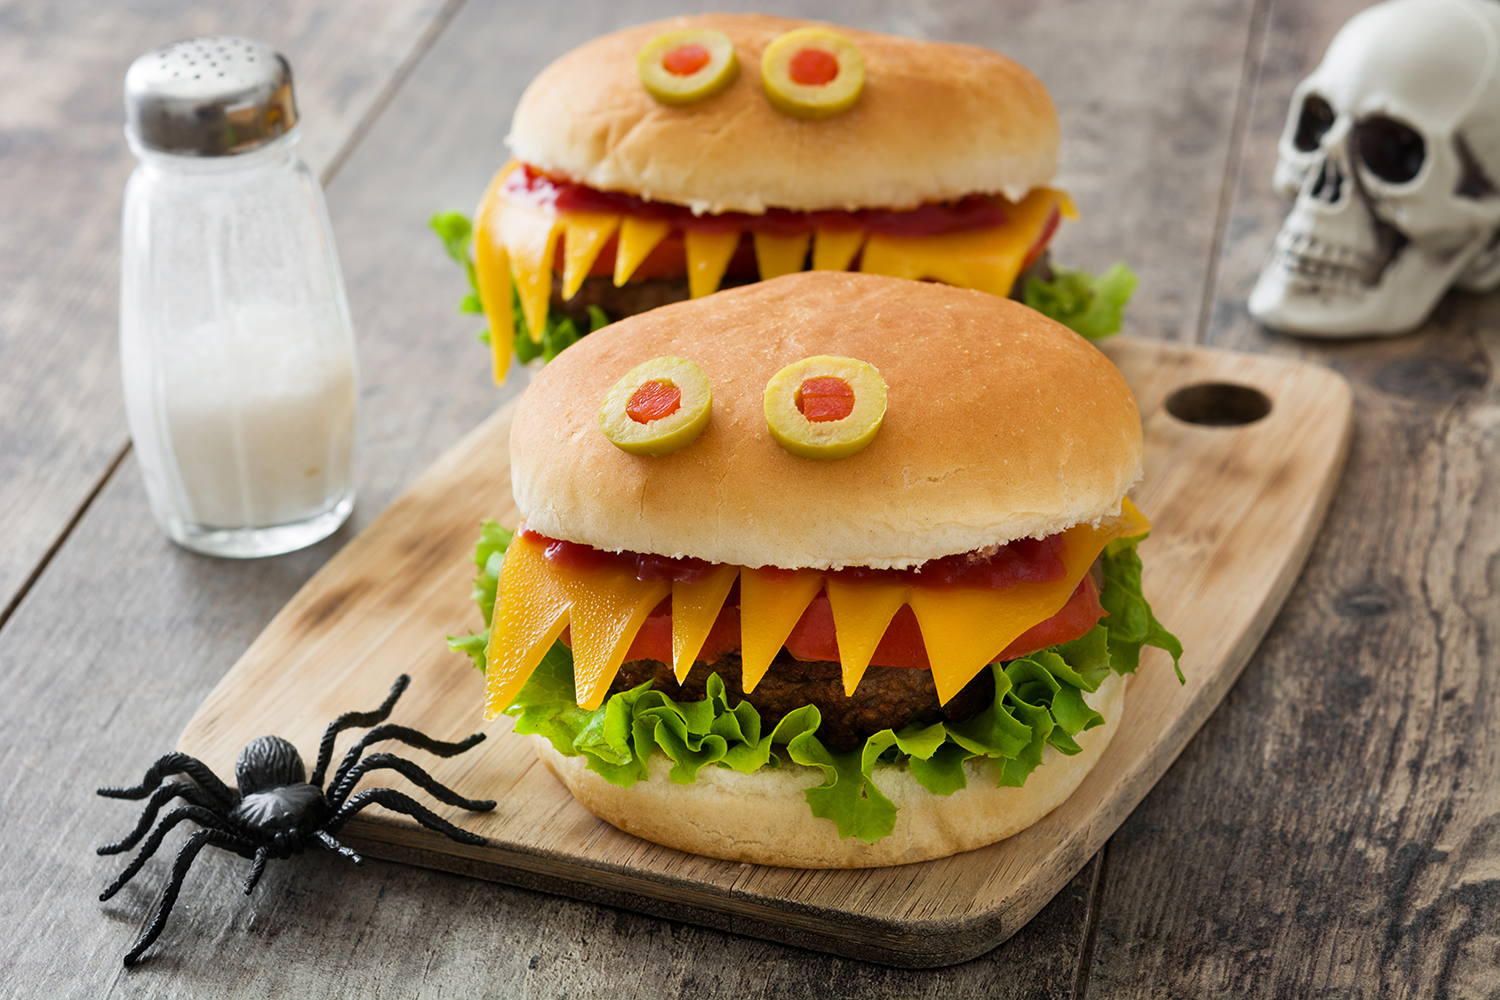 Come up with some fun restaurant Halloween menu items.